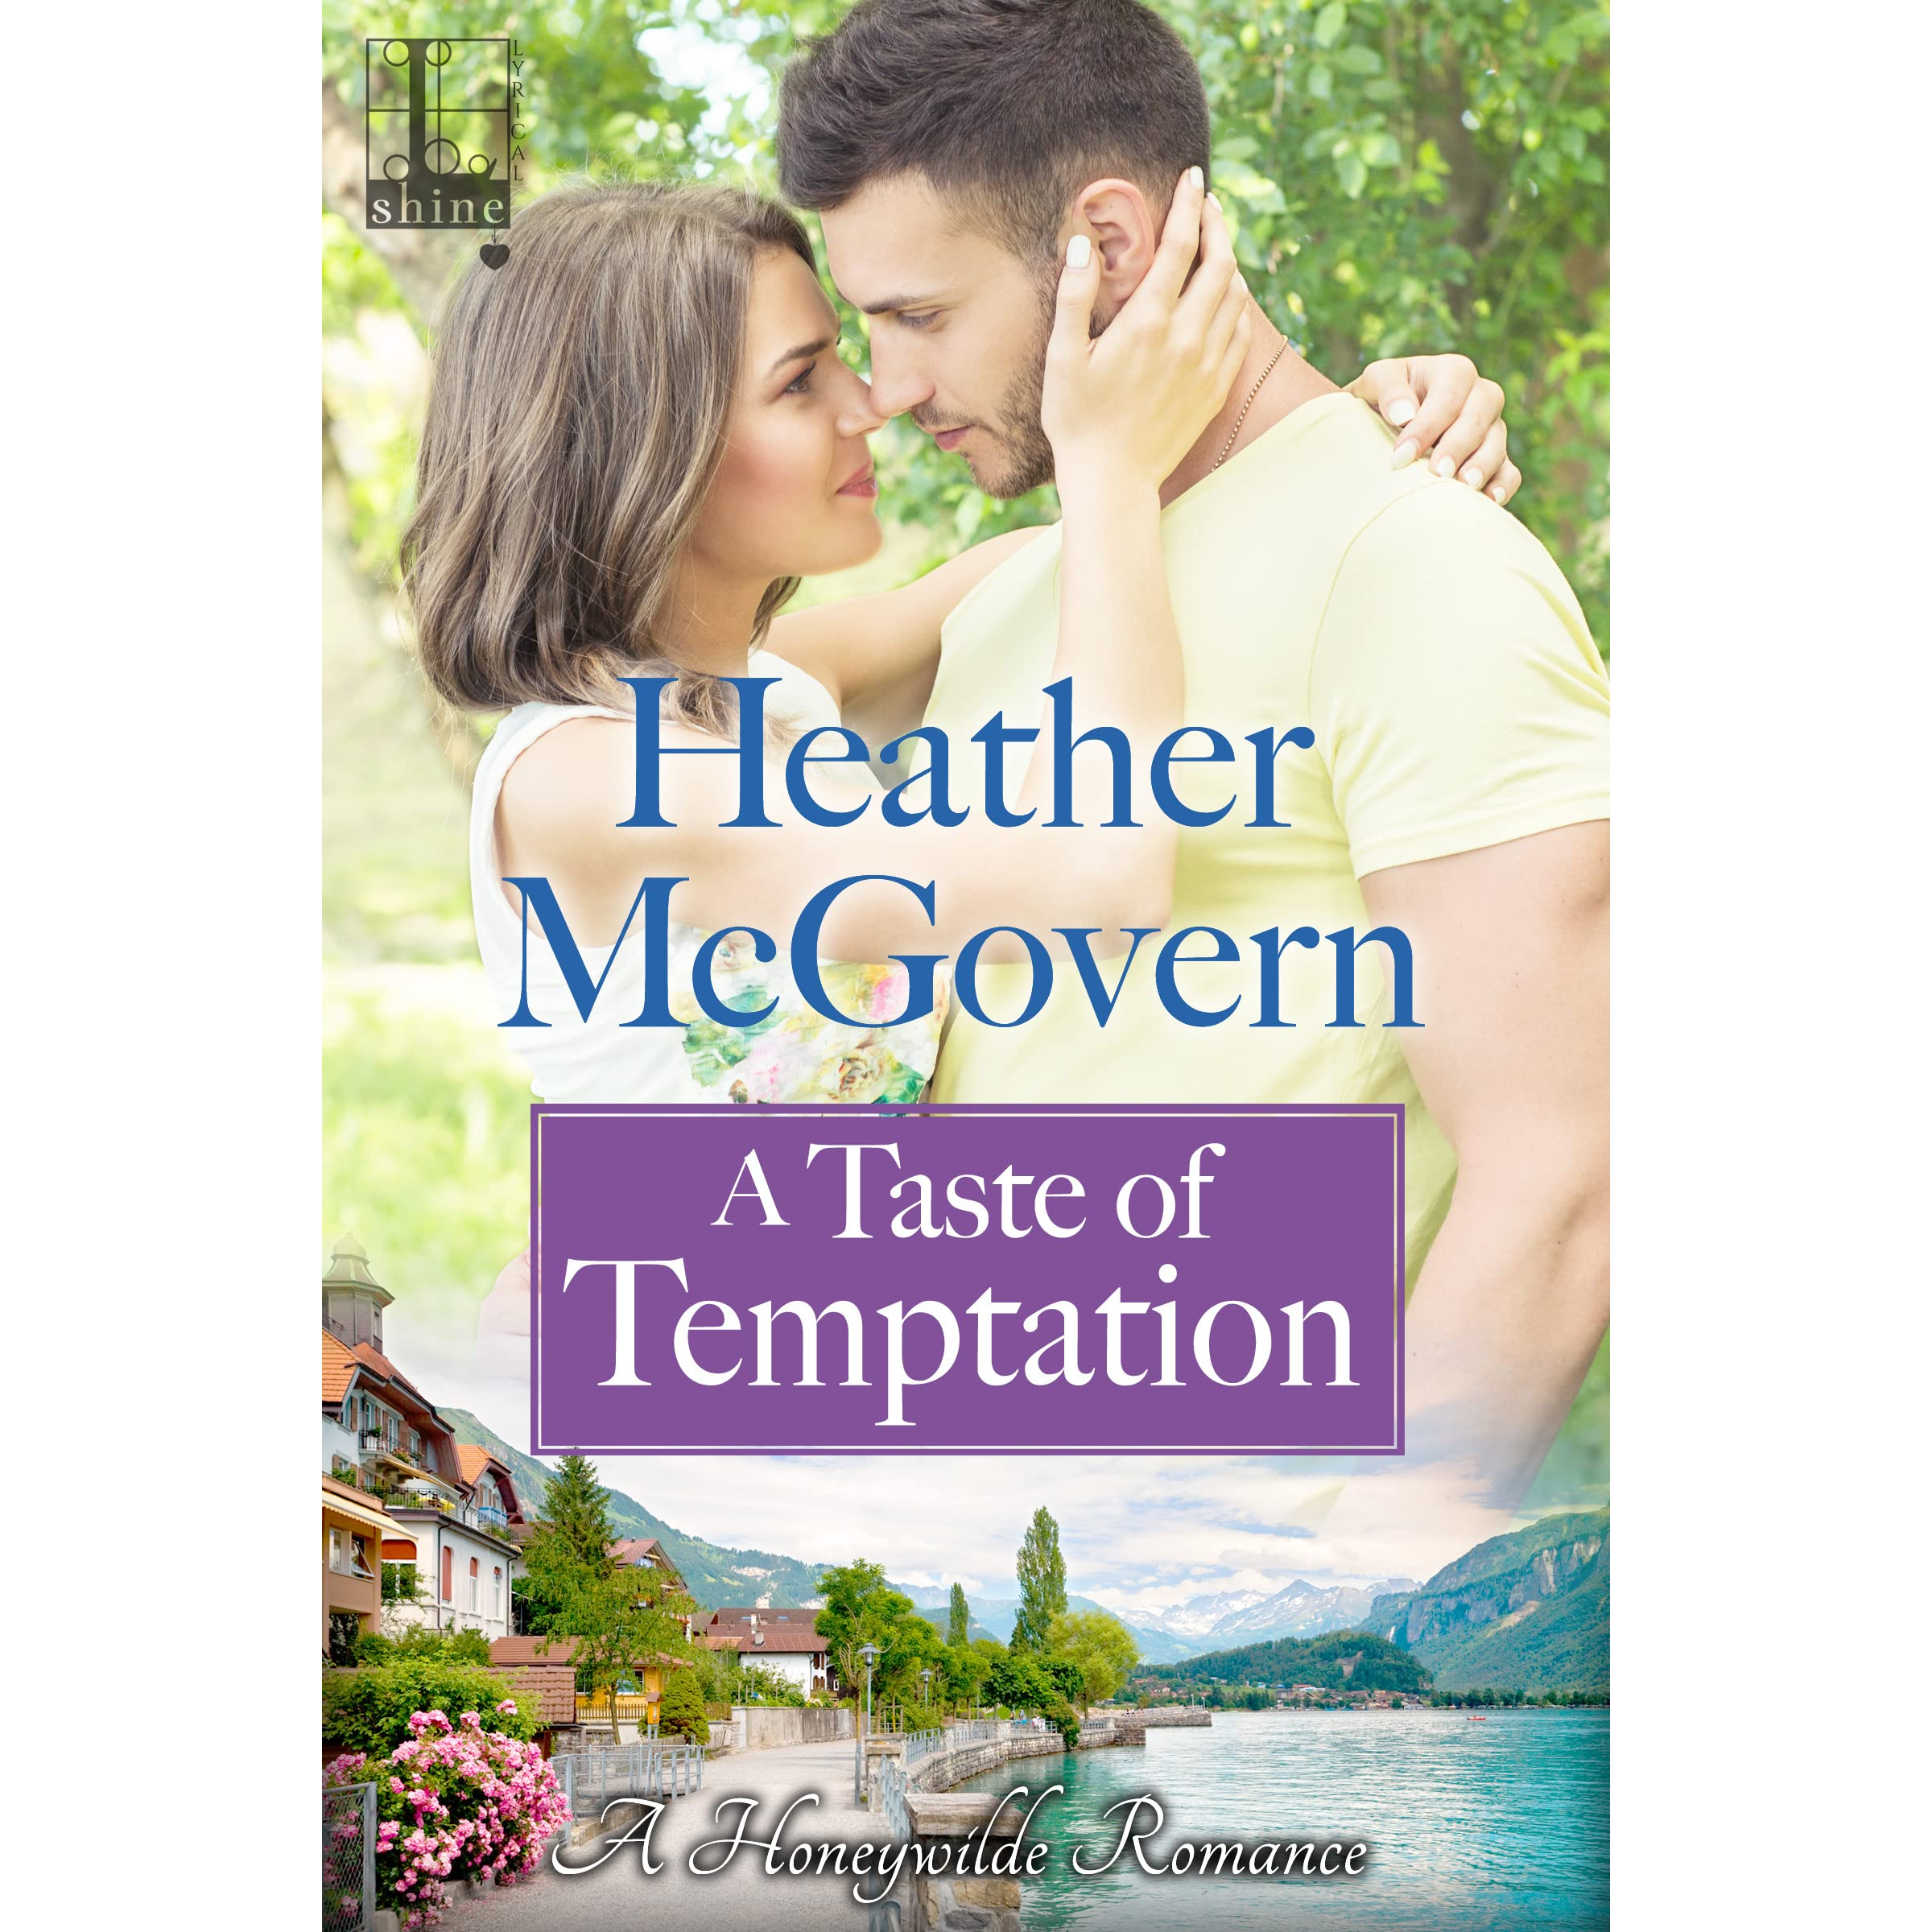 Excerpt from A TASTE OF TEMPTATION